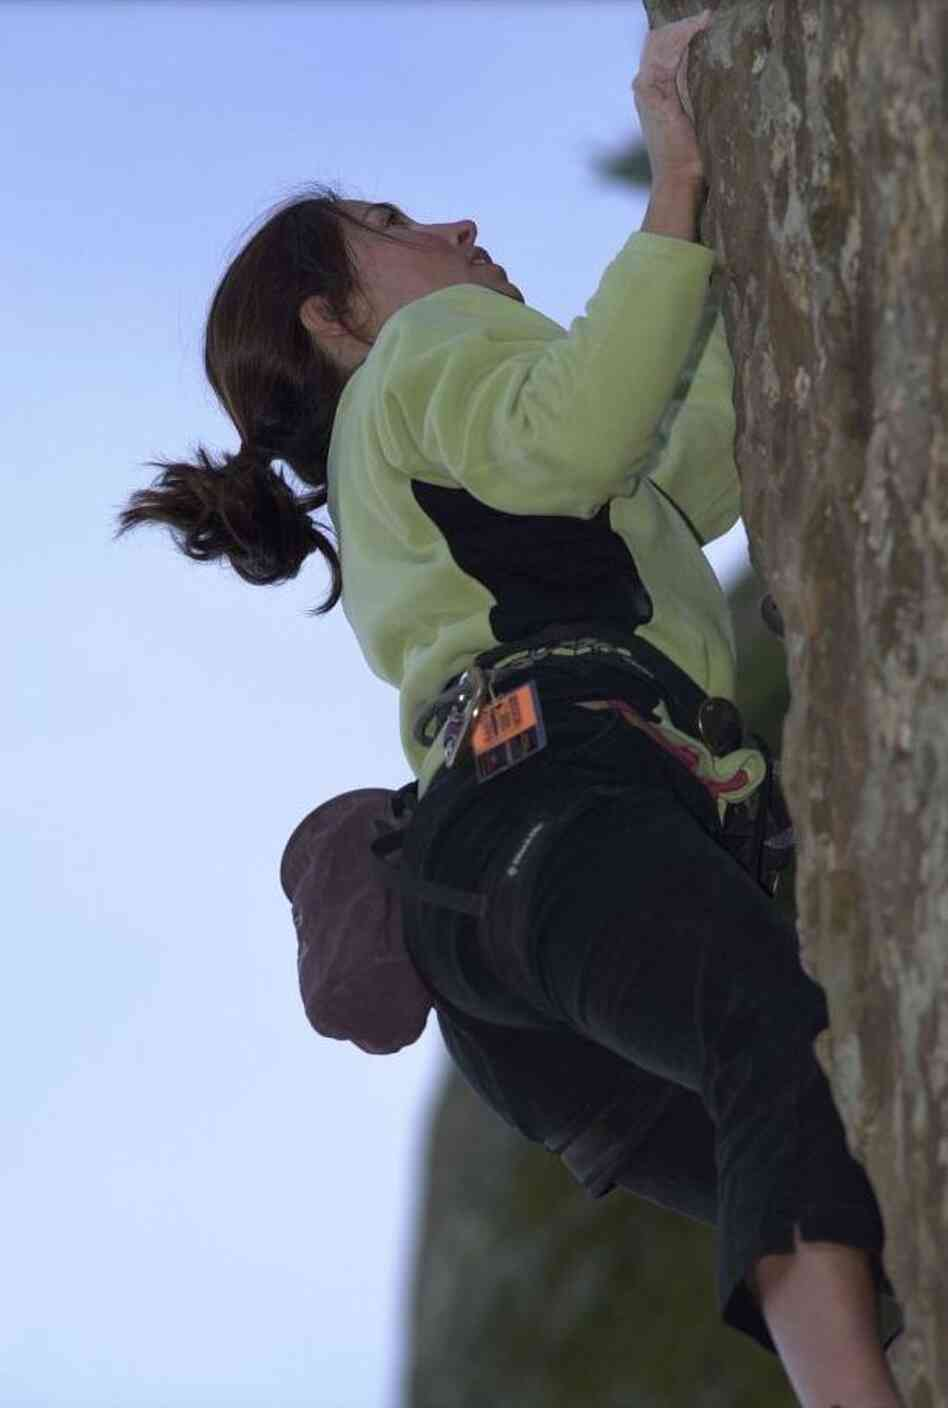 As a rock climber, Backcountry CEO Jill Layfield says mov